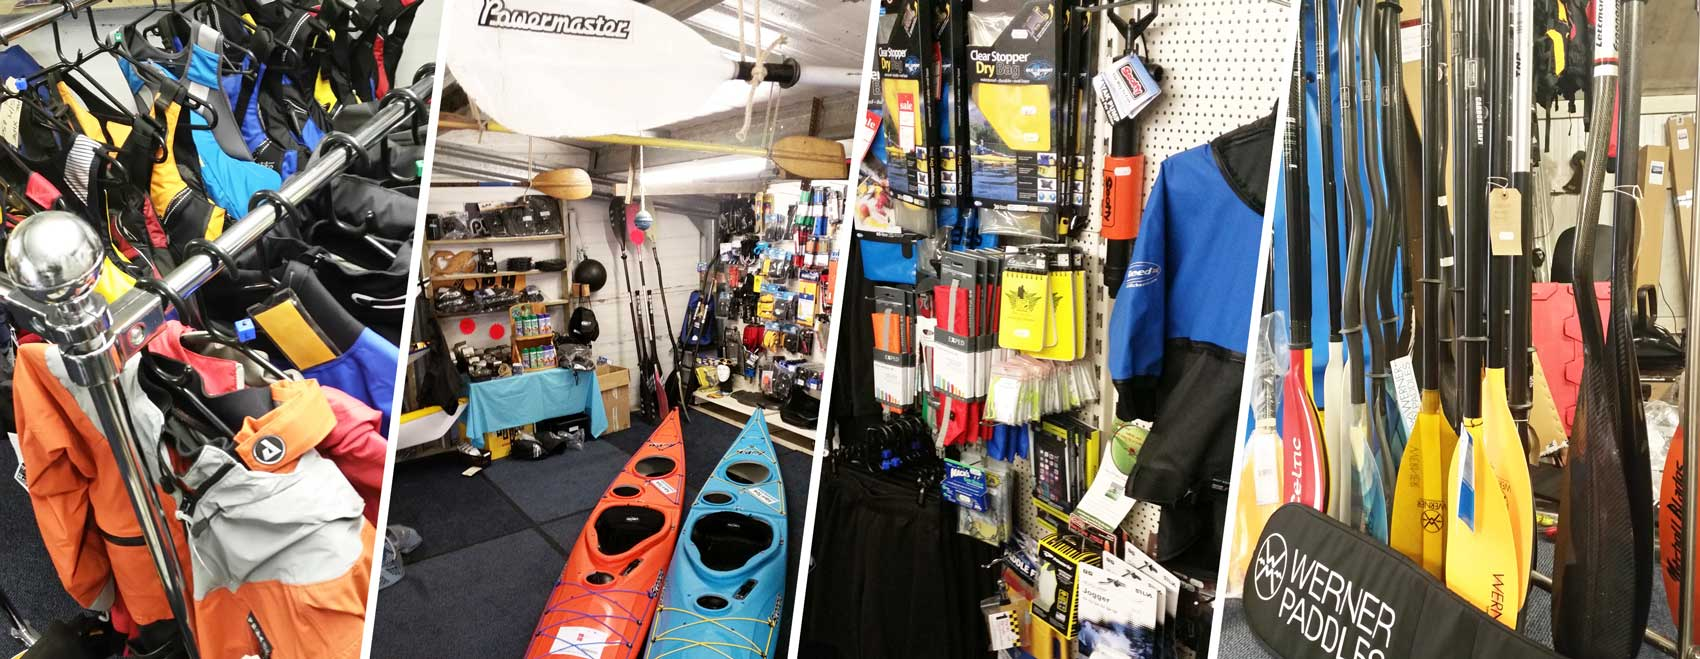 Karitek - all the kayaking gear to get you here!